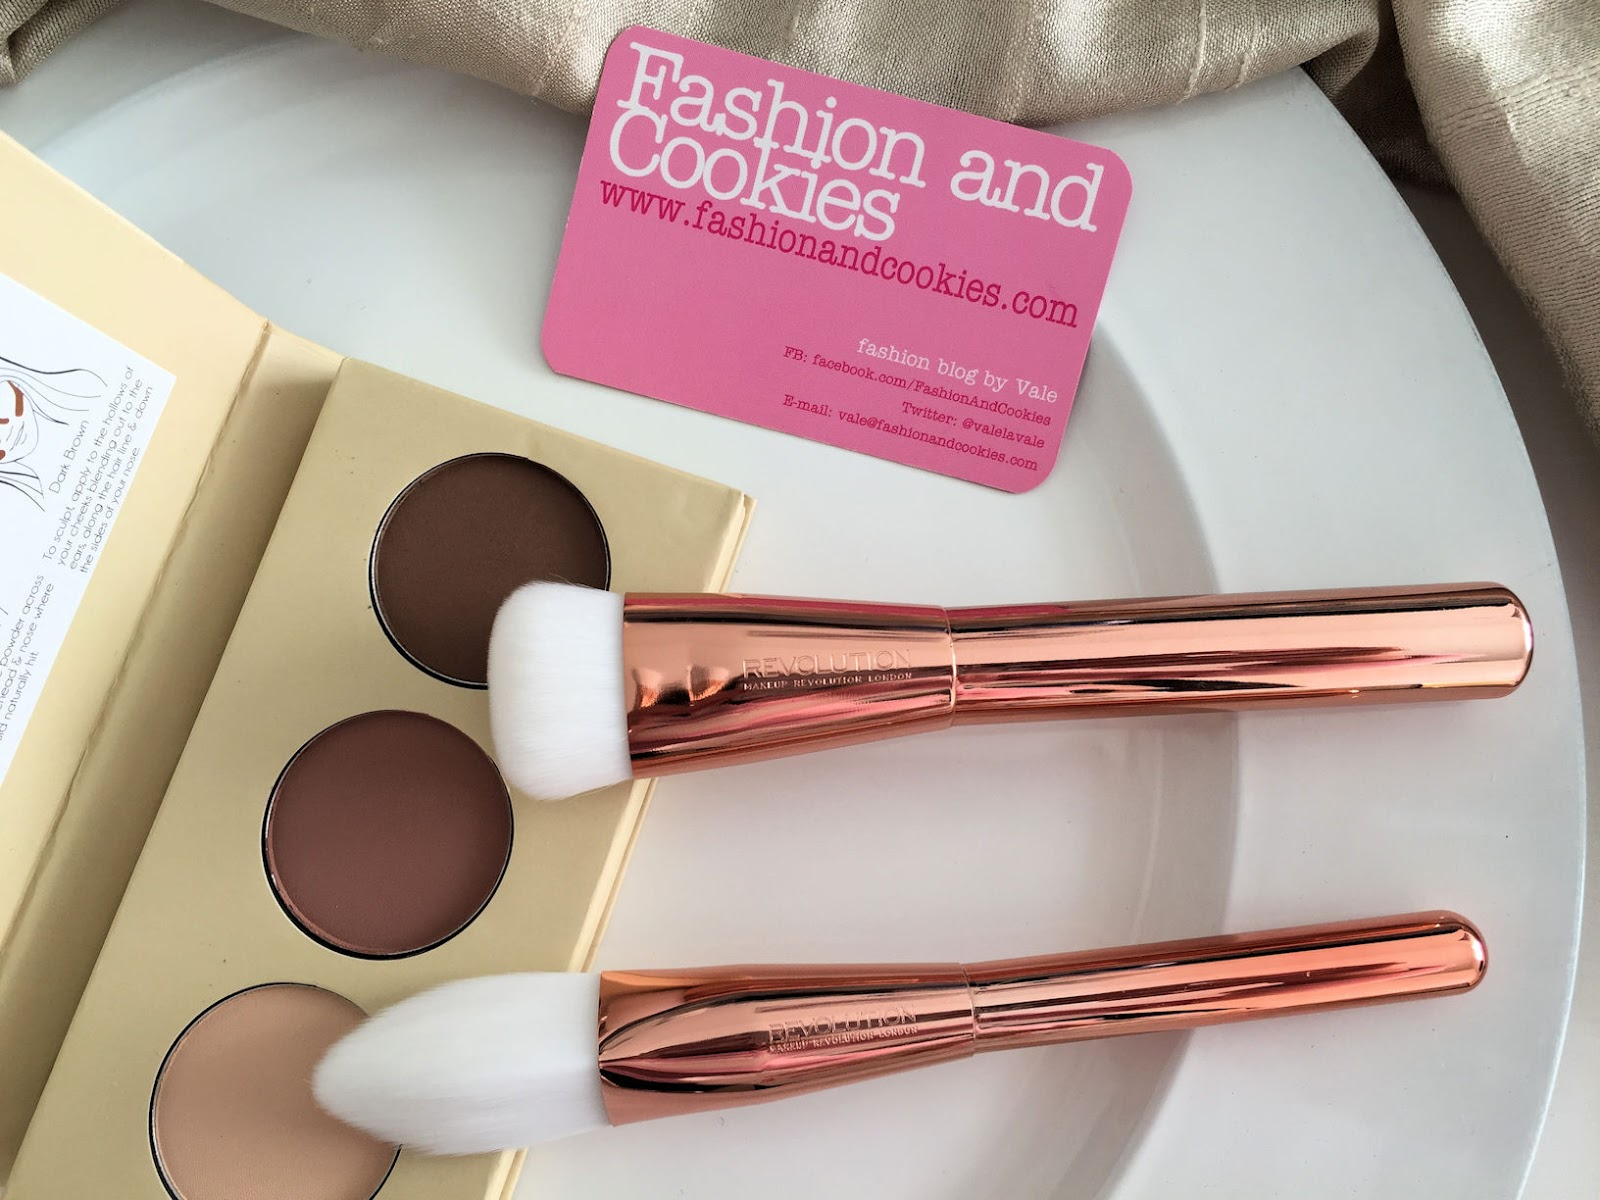 Best cheap contour brushes, Makeup Revolution Ultra Metals Revolution makeup brushes review on Fashion and Cookies beauty blog, beauty blogger